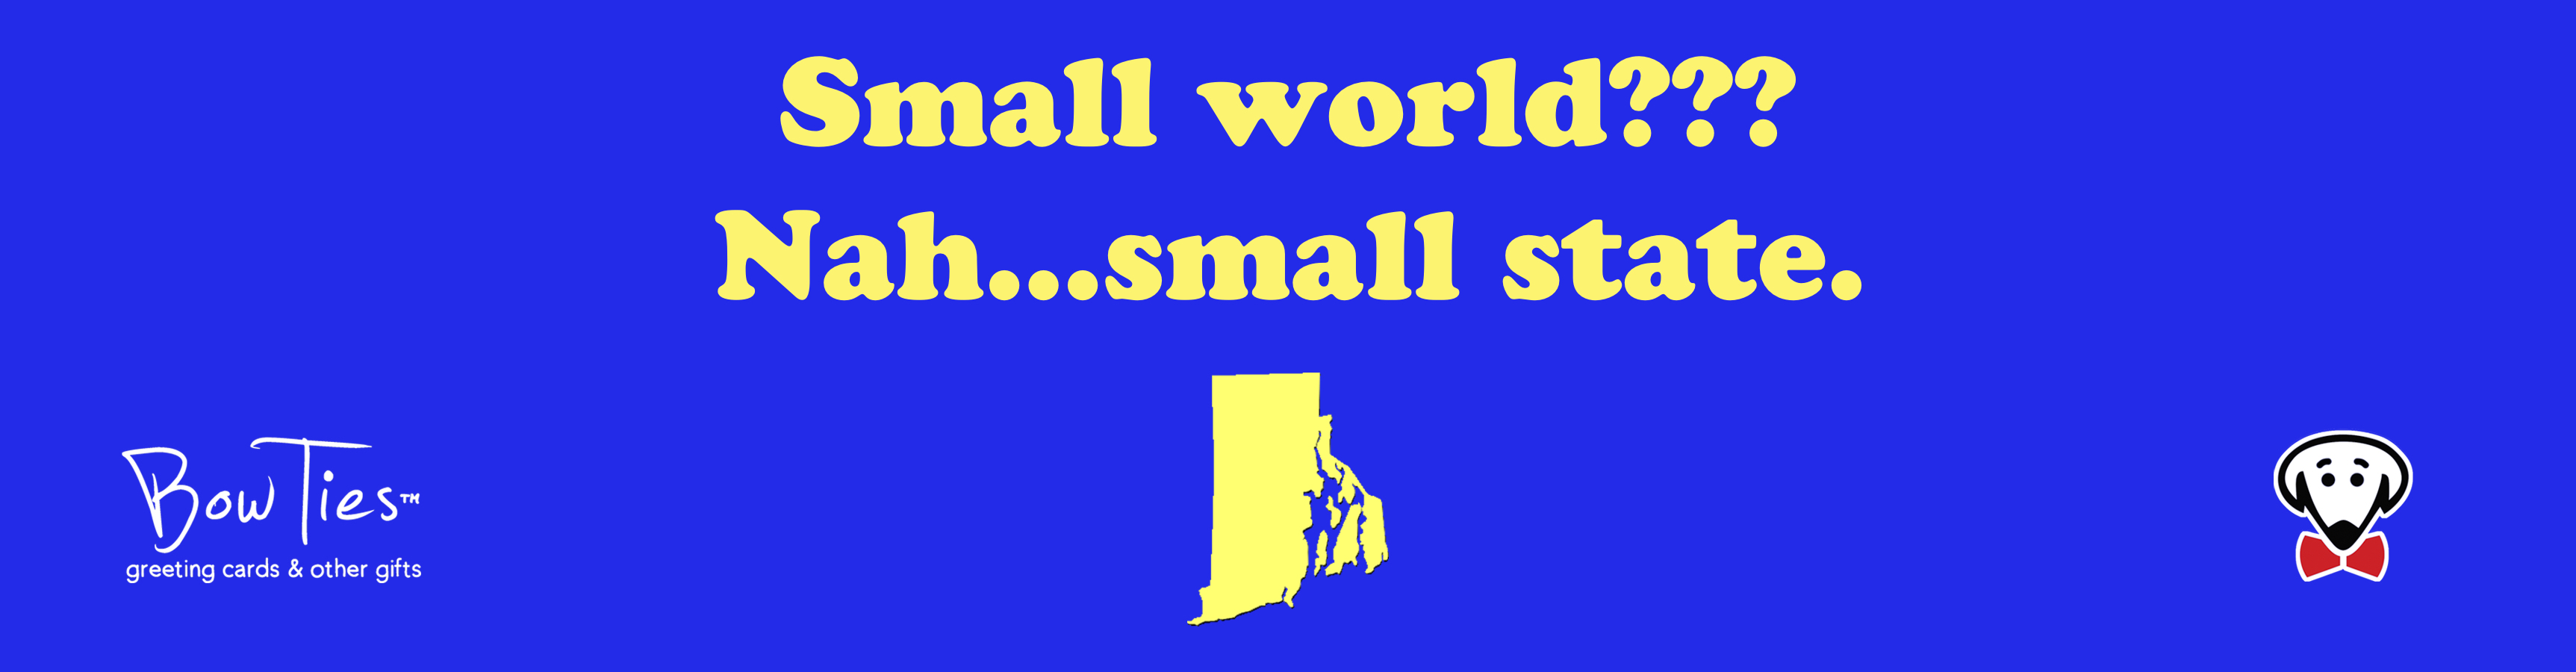 Small world??? Nah…small state. – sticker